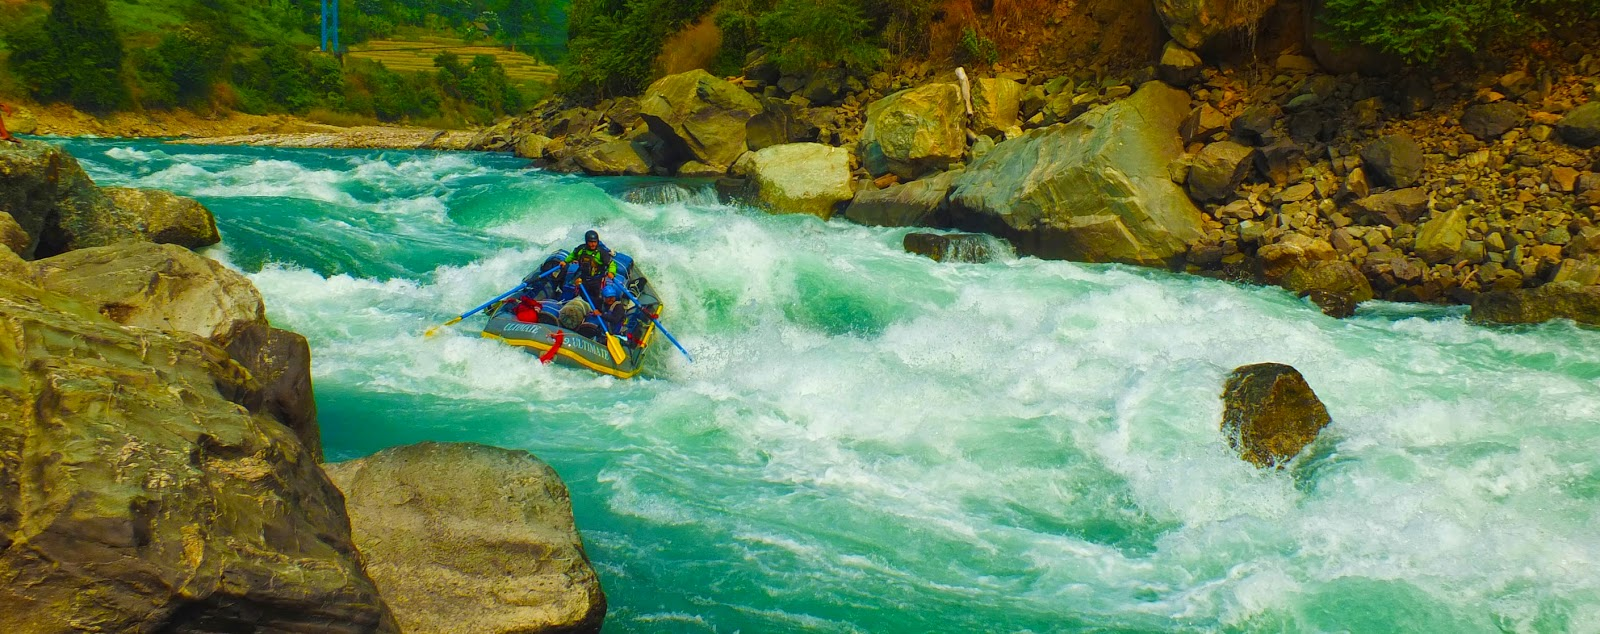 nepal rafting expeditions